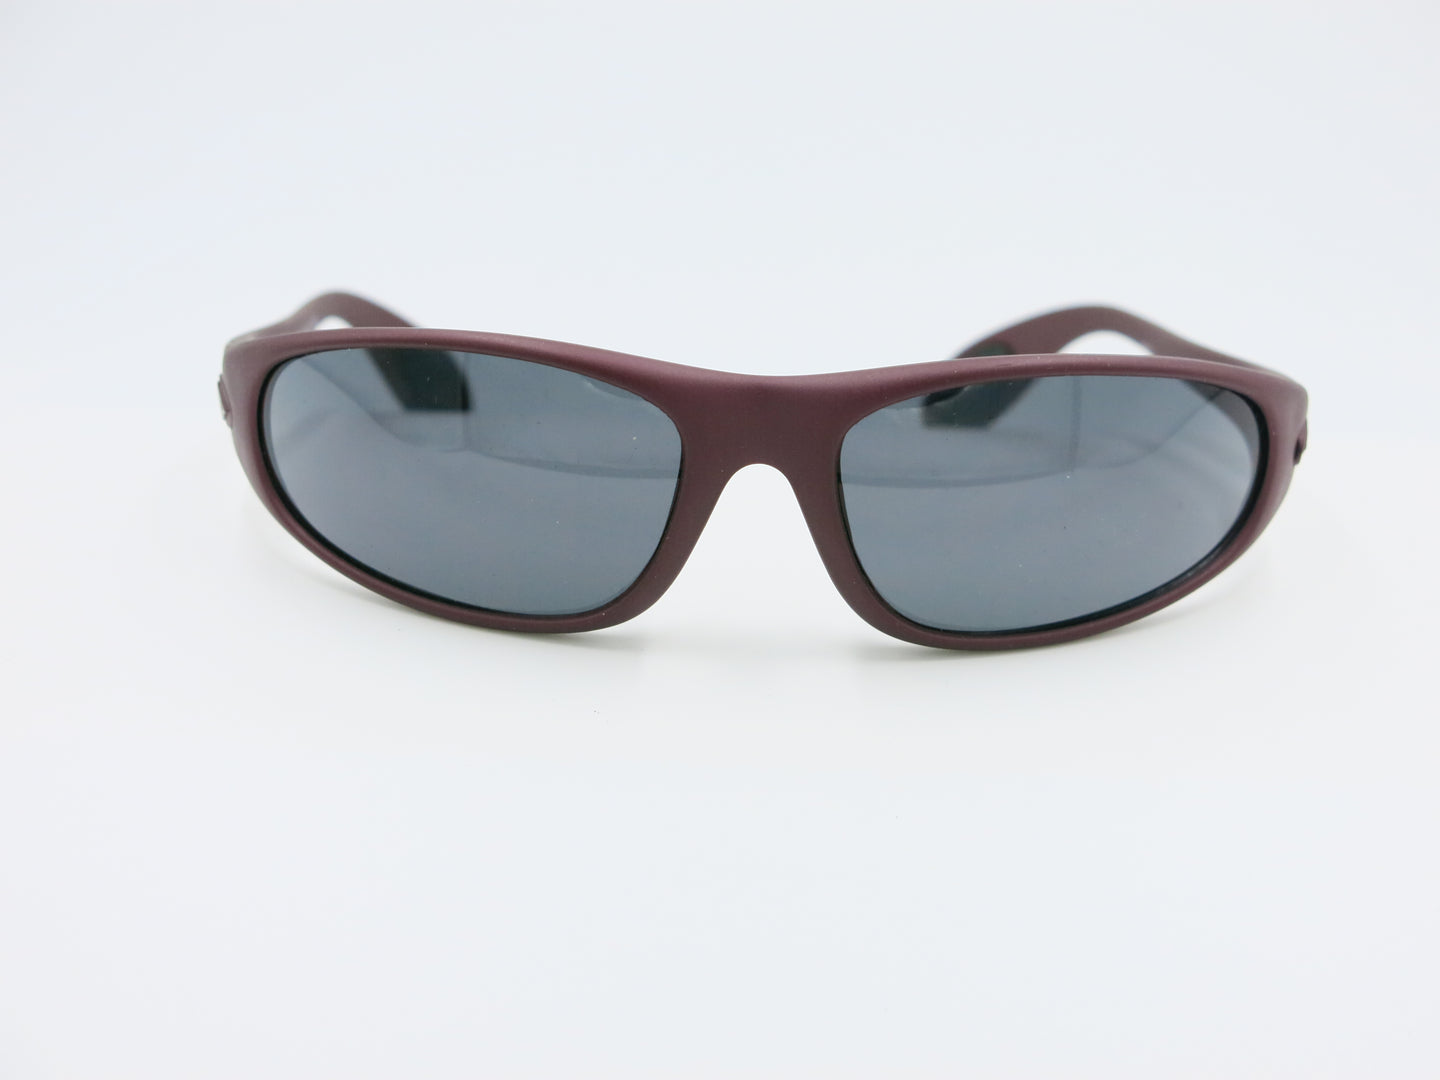 Killer Loop Sunglasses - K 1092 | Sunglasses by Killer Loop | Friedman & Sons